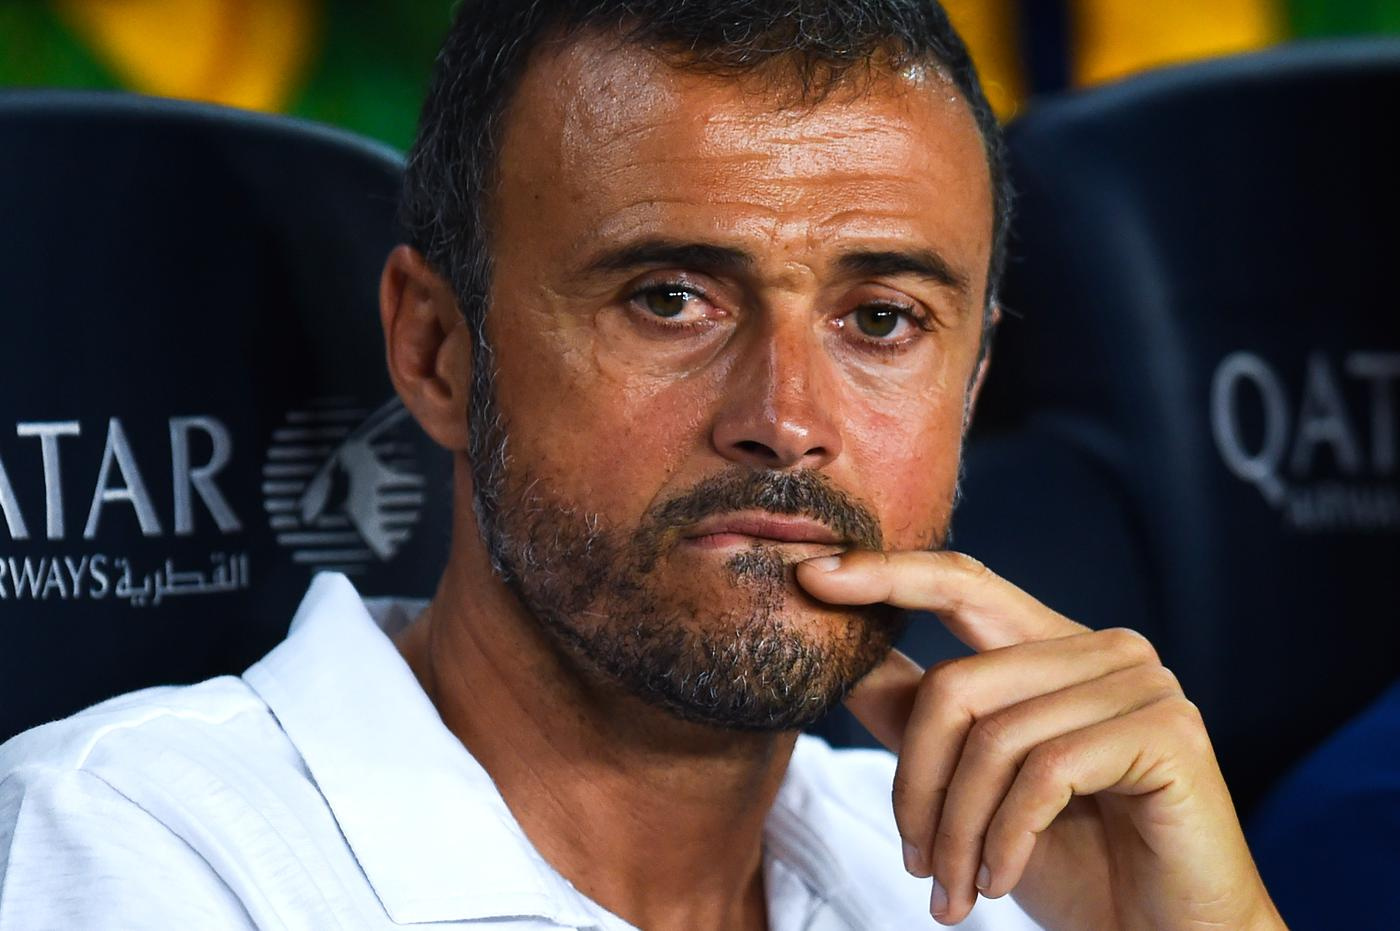 Is Barcelona boss Luis Enrique right to continue with team rotations?